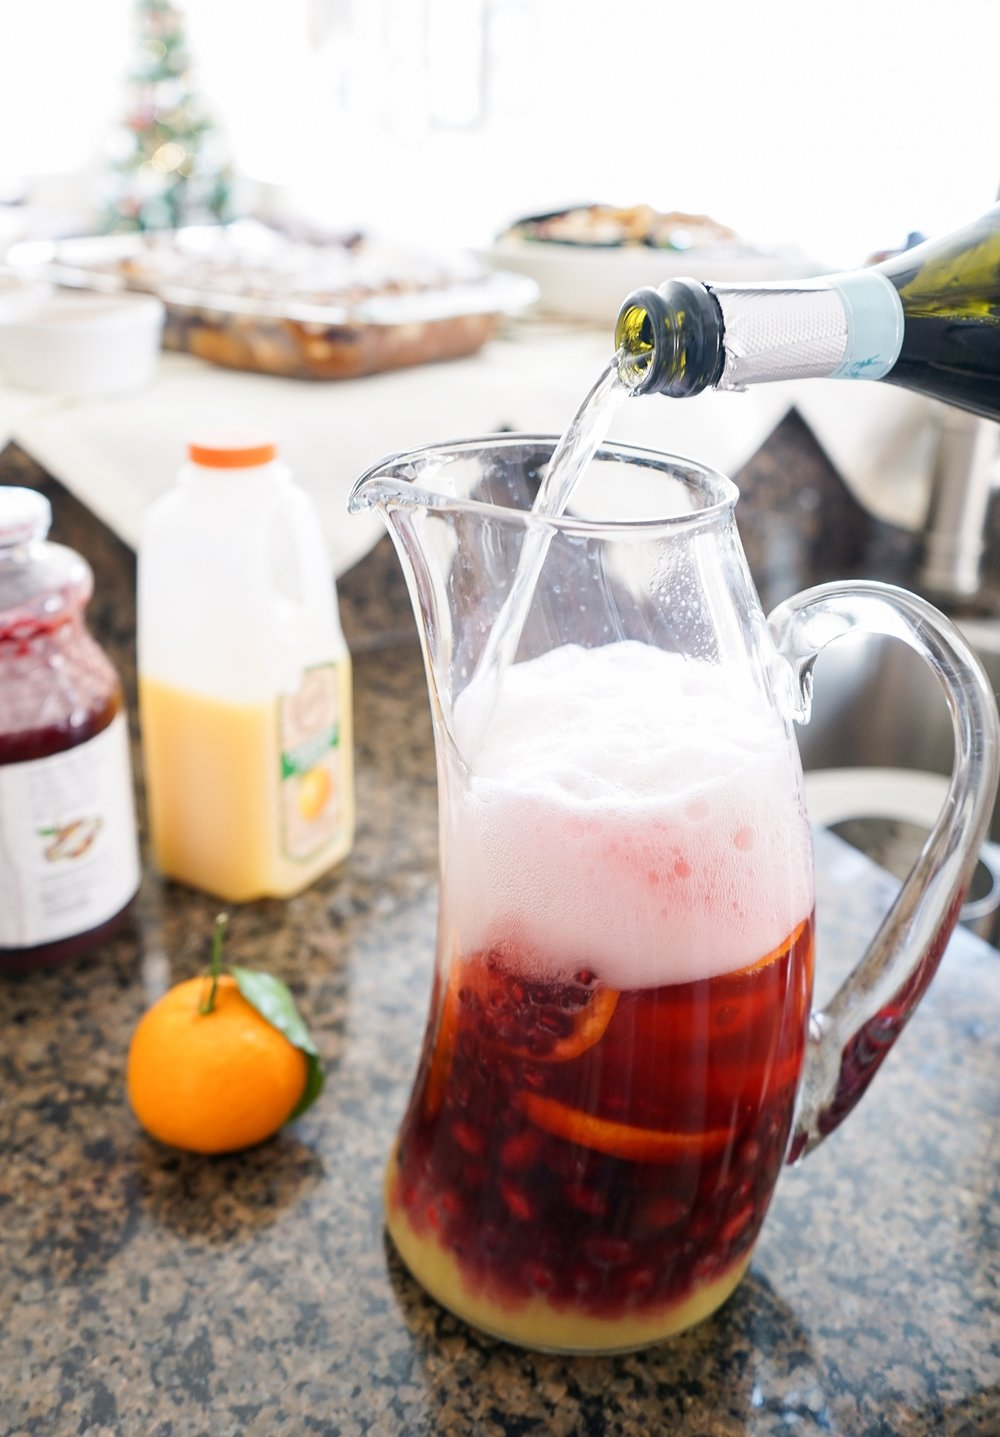 Adding the Prosecco to the Cranberry Mimosa